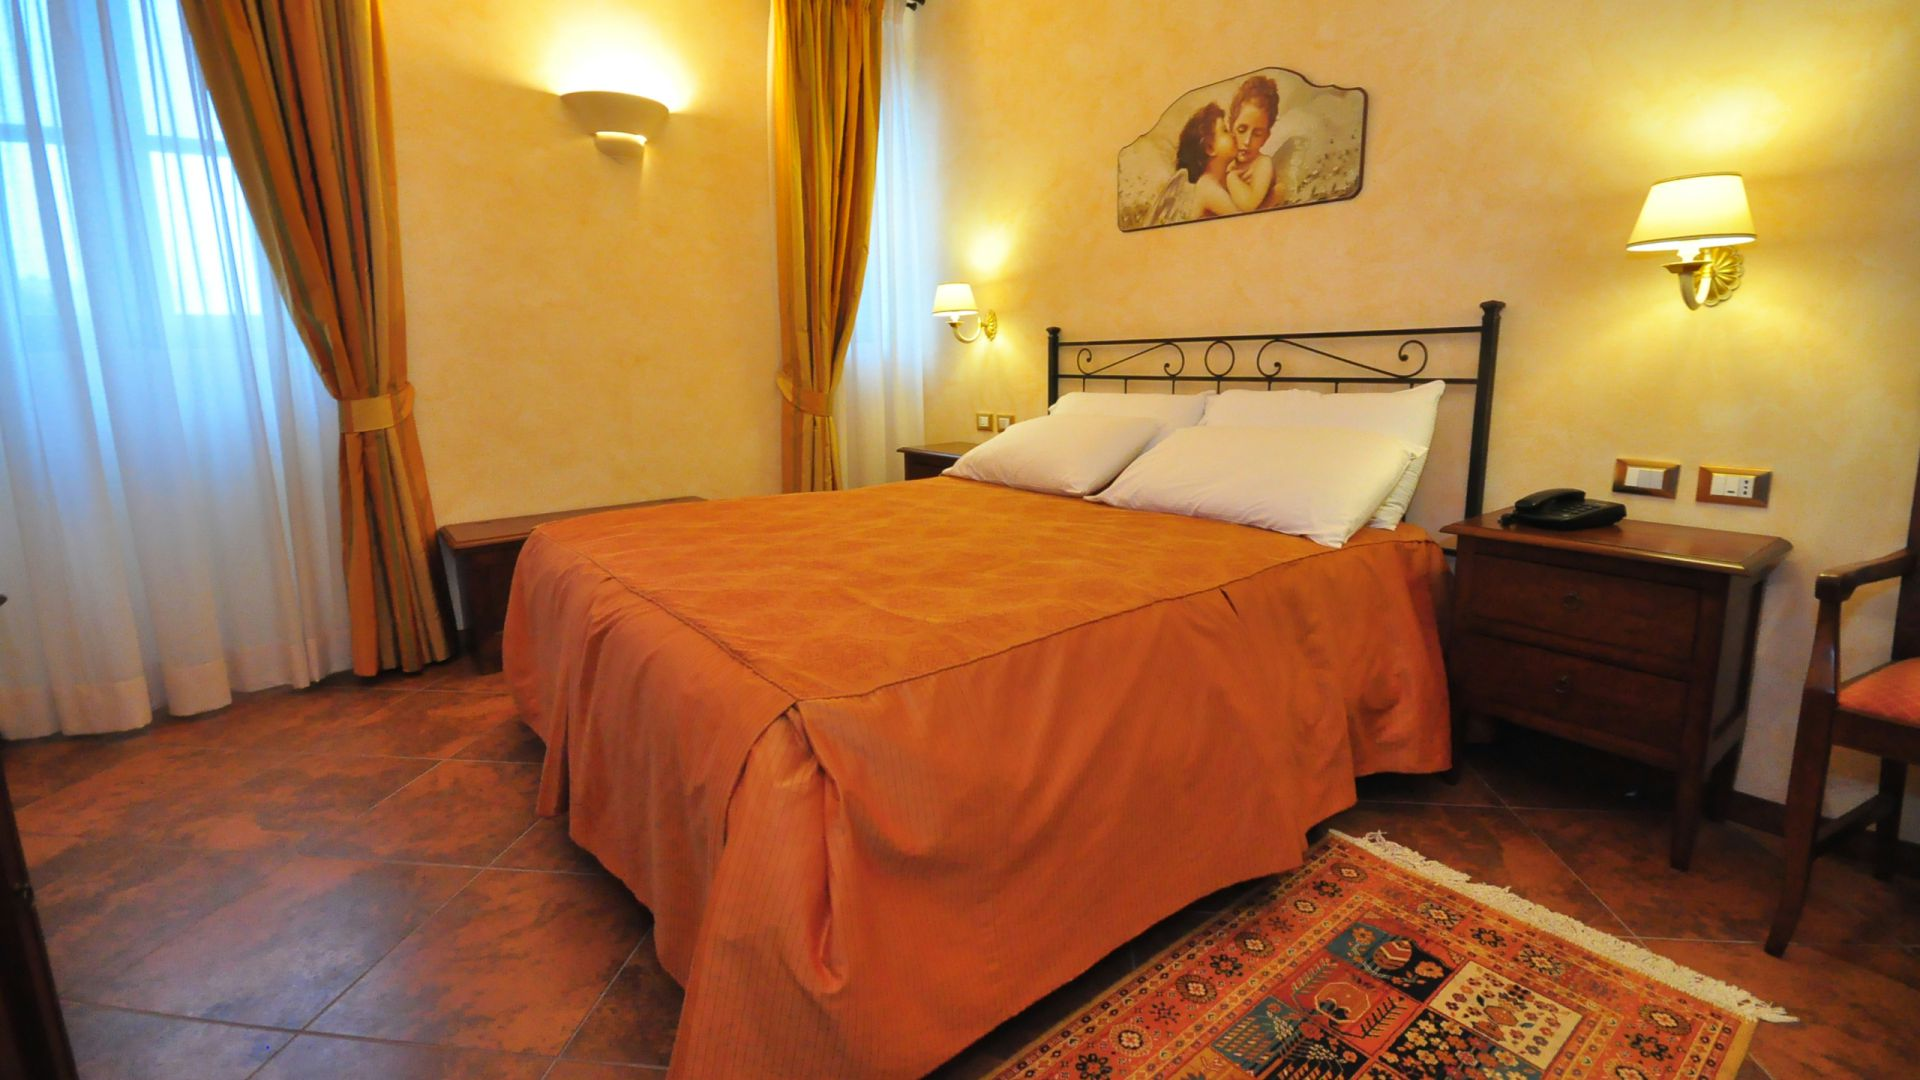 oc-casali-rome-rooms-01